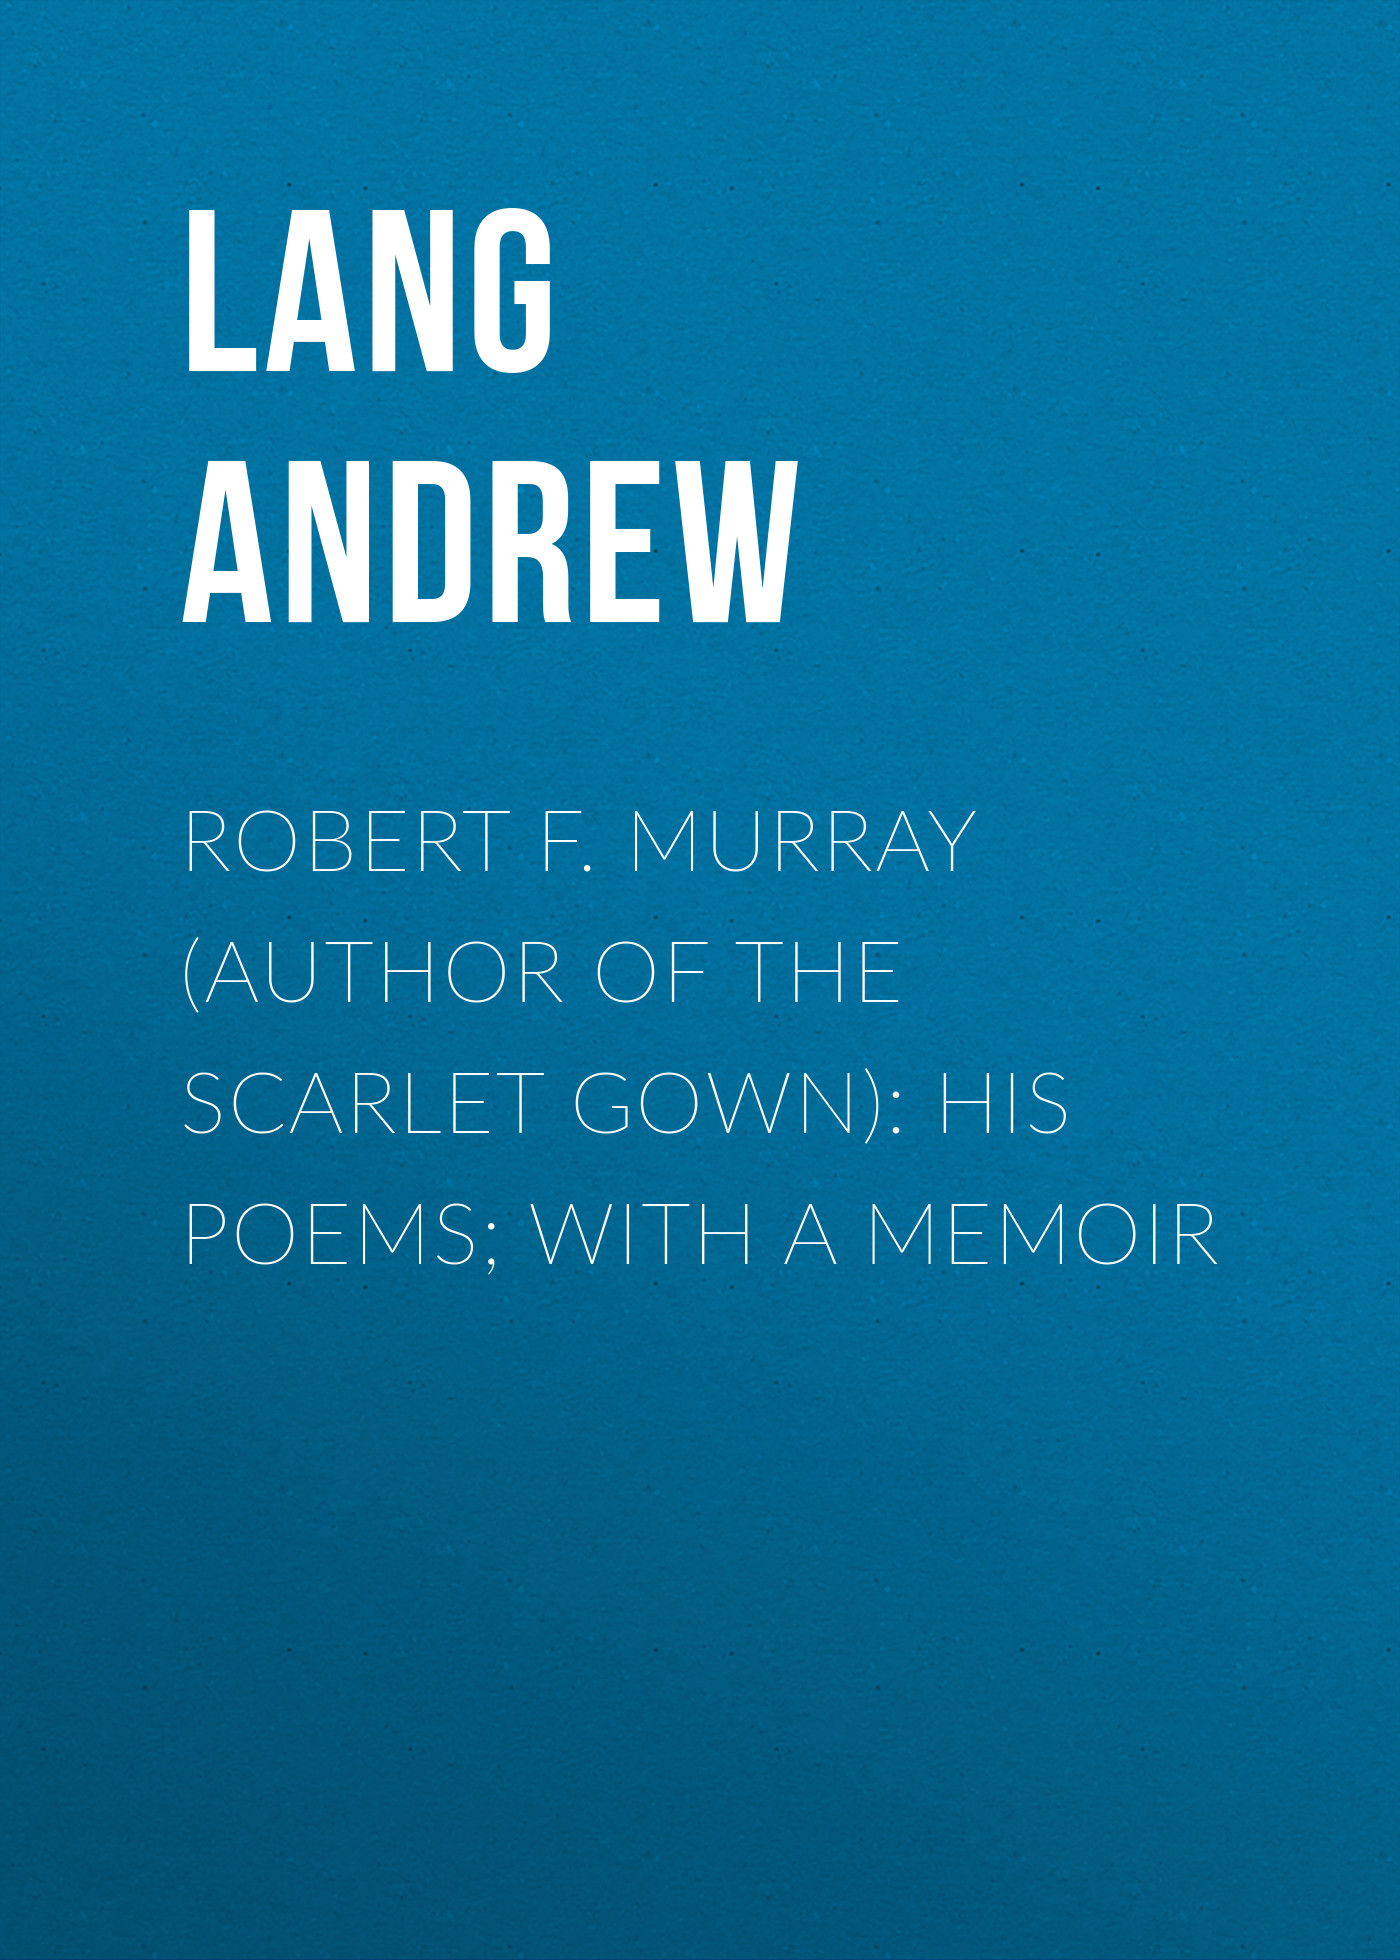 Lang Andrew Robert F. Murray (Author of the Scarlet Gown): His Poems; with a Memoir robert spanyi andrew spanyi spanyi andrew spanyi operational leadership